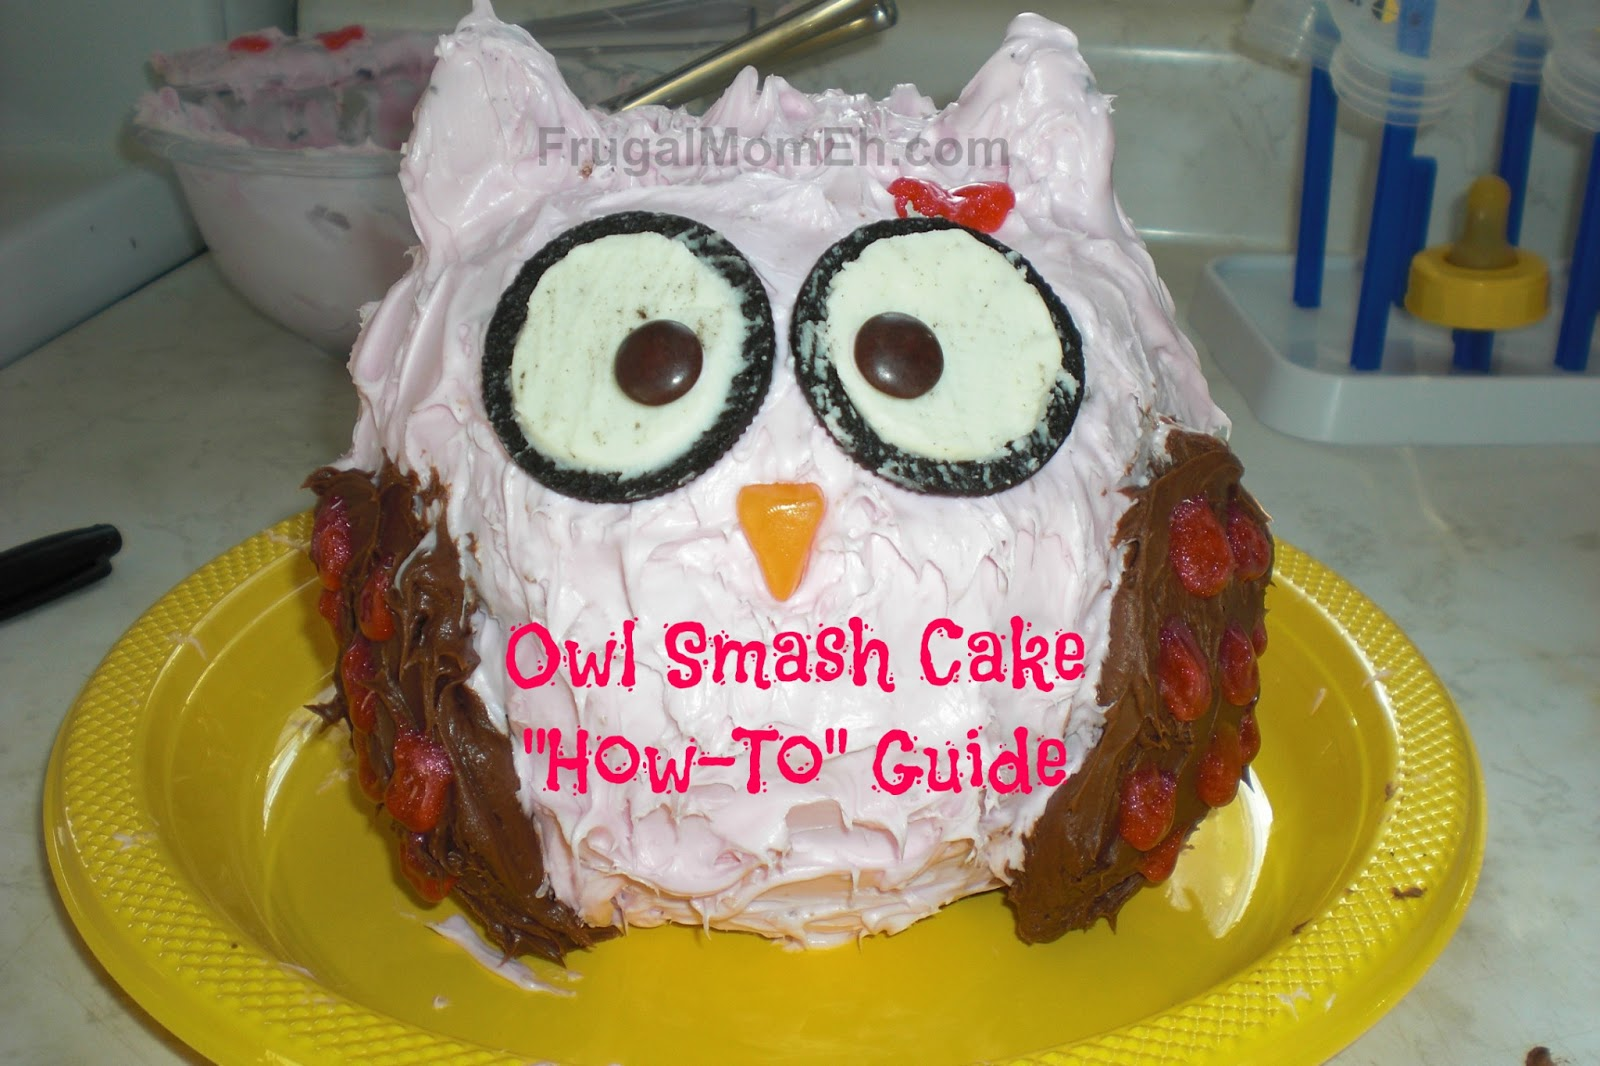 Owl Smash Cake How To Guide